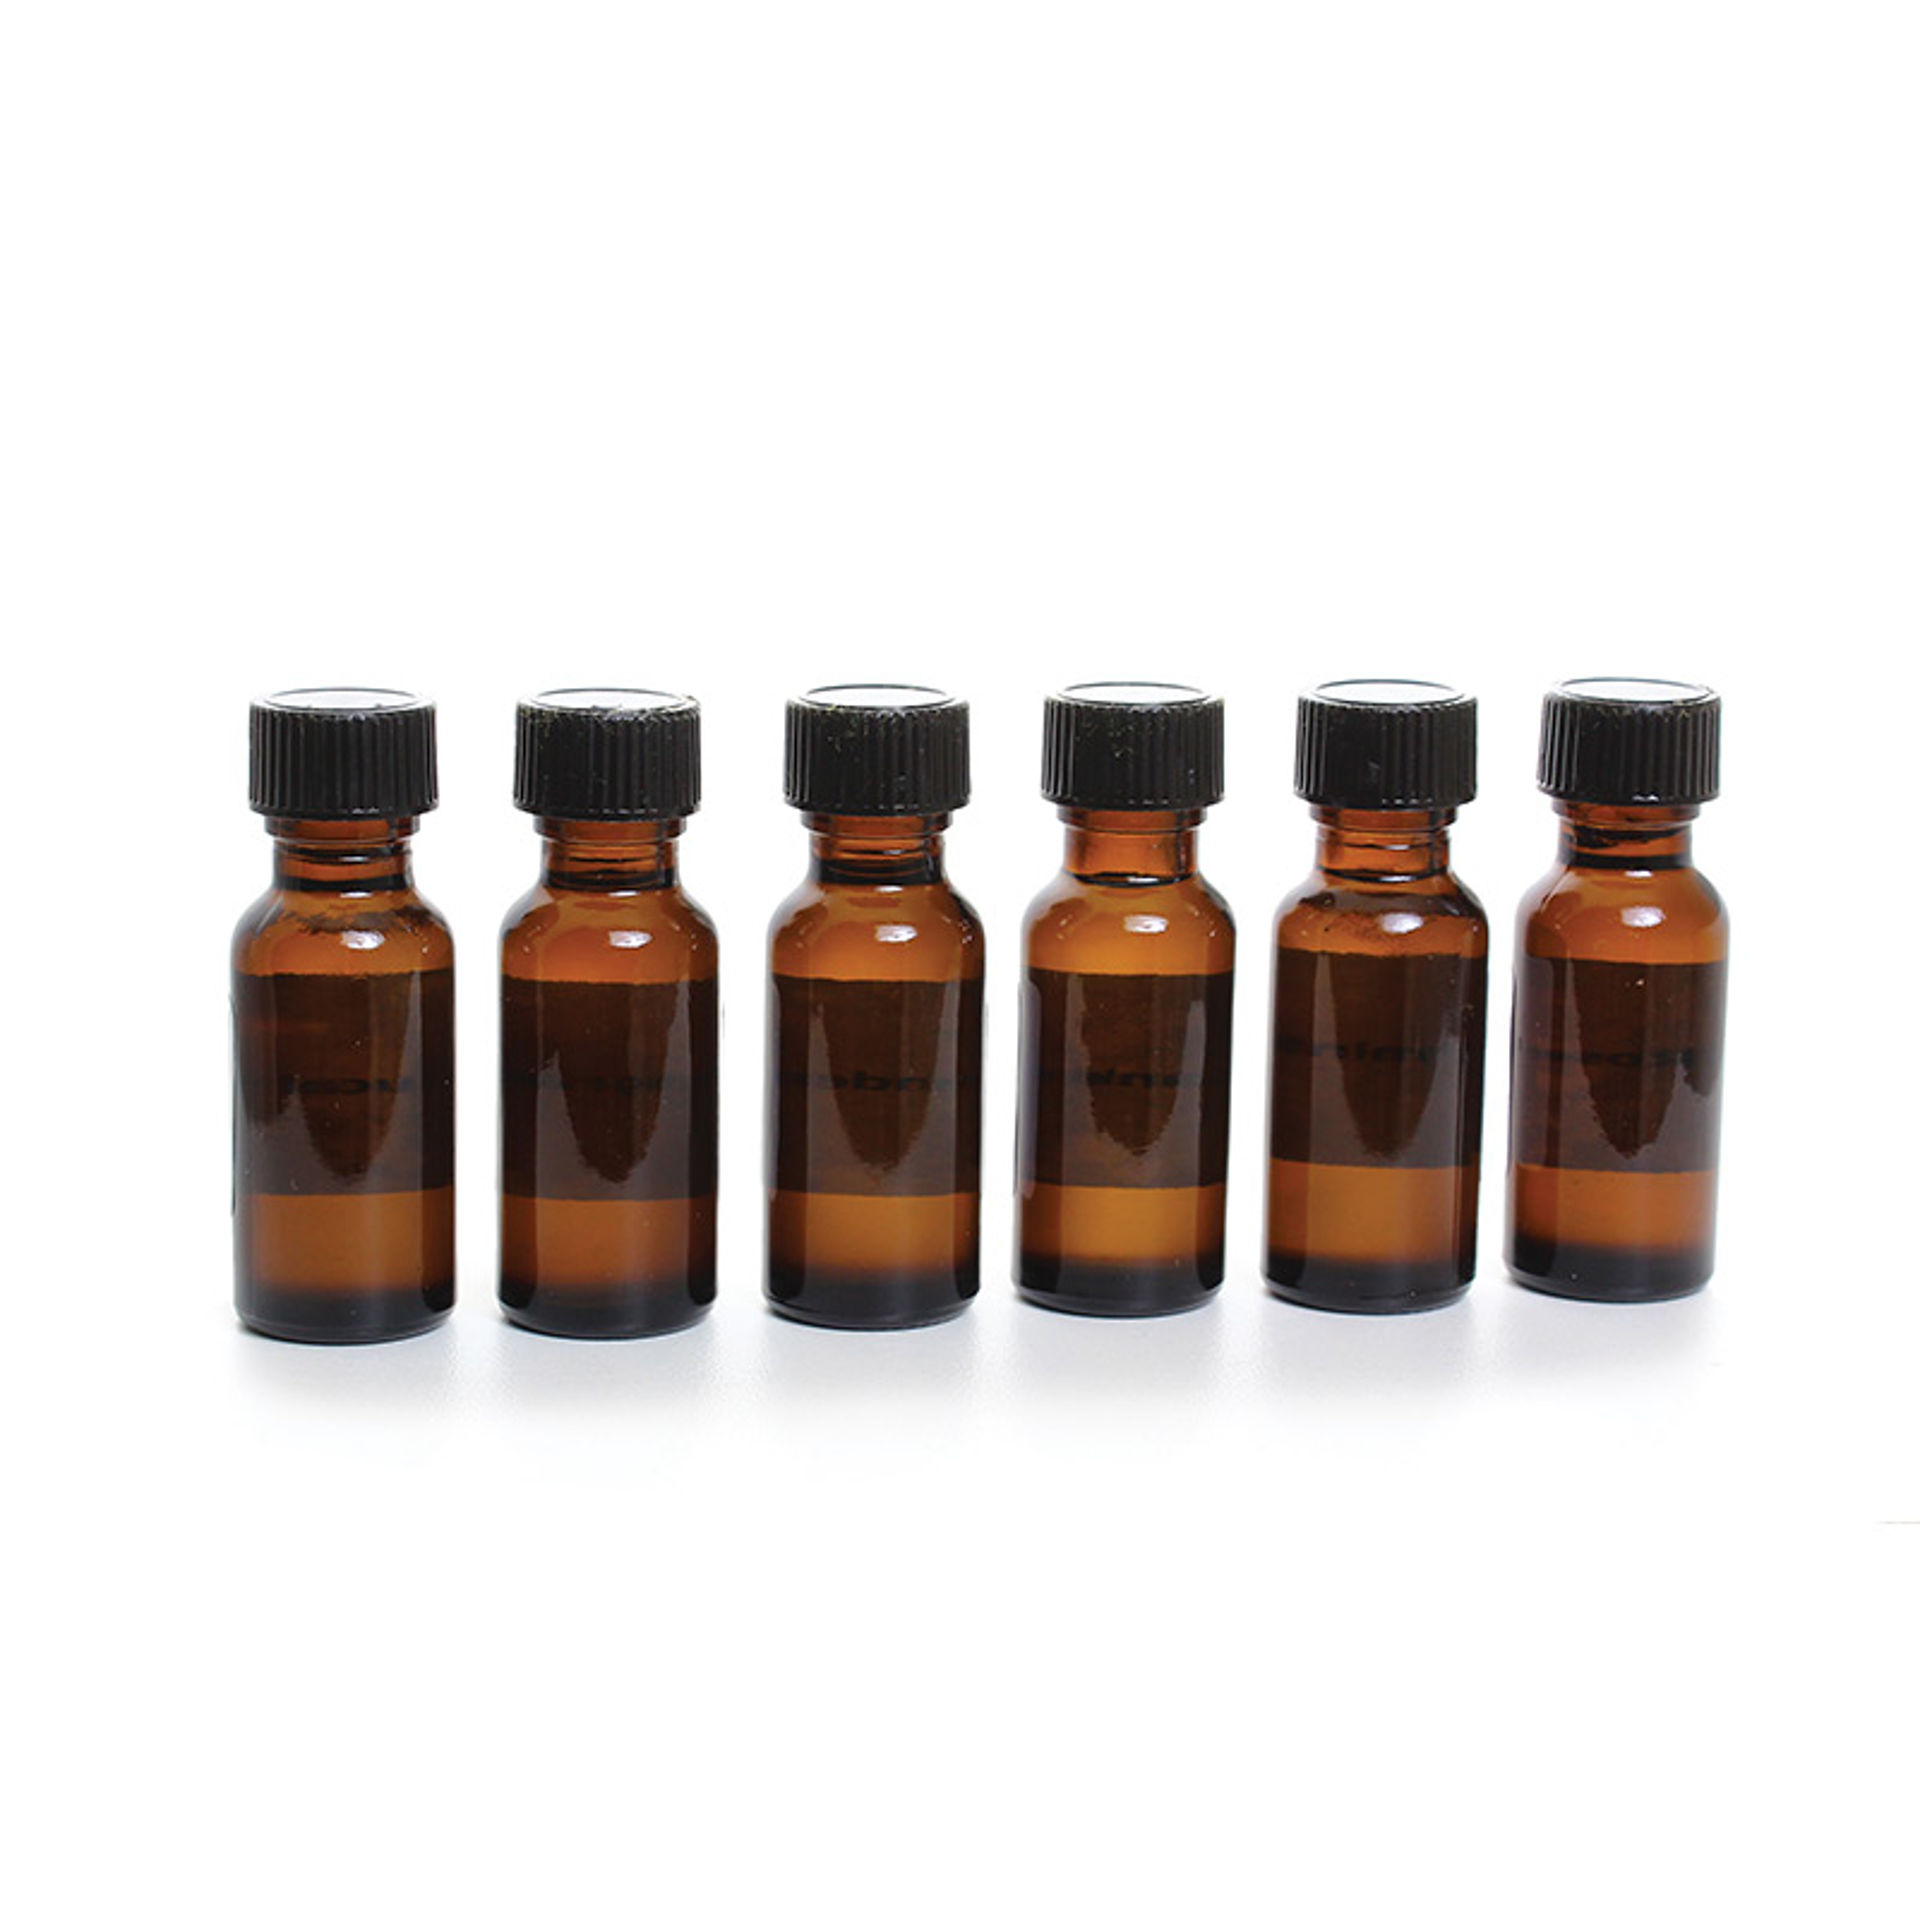 Picture of Set Of 6 Top-Selling Essential Oils ½ oz